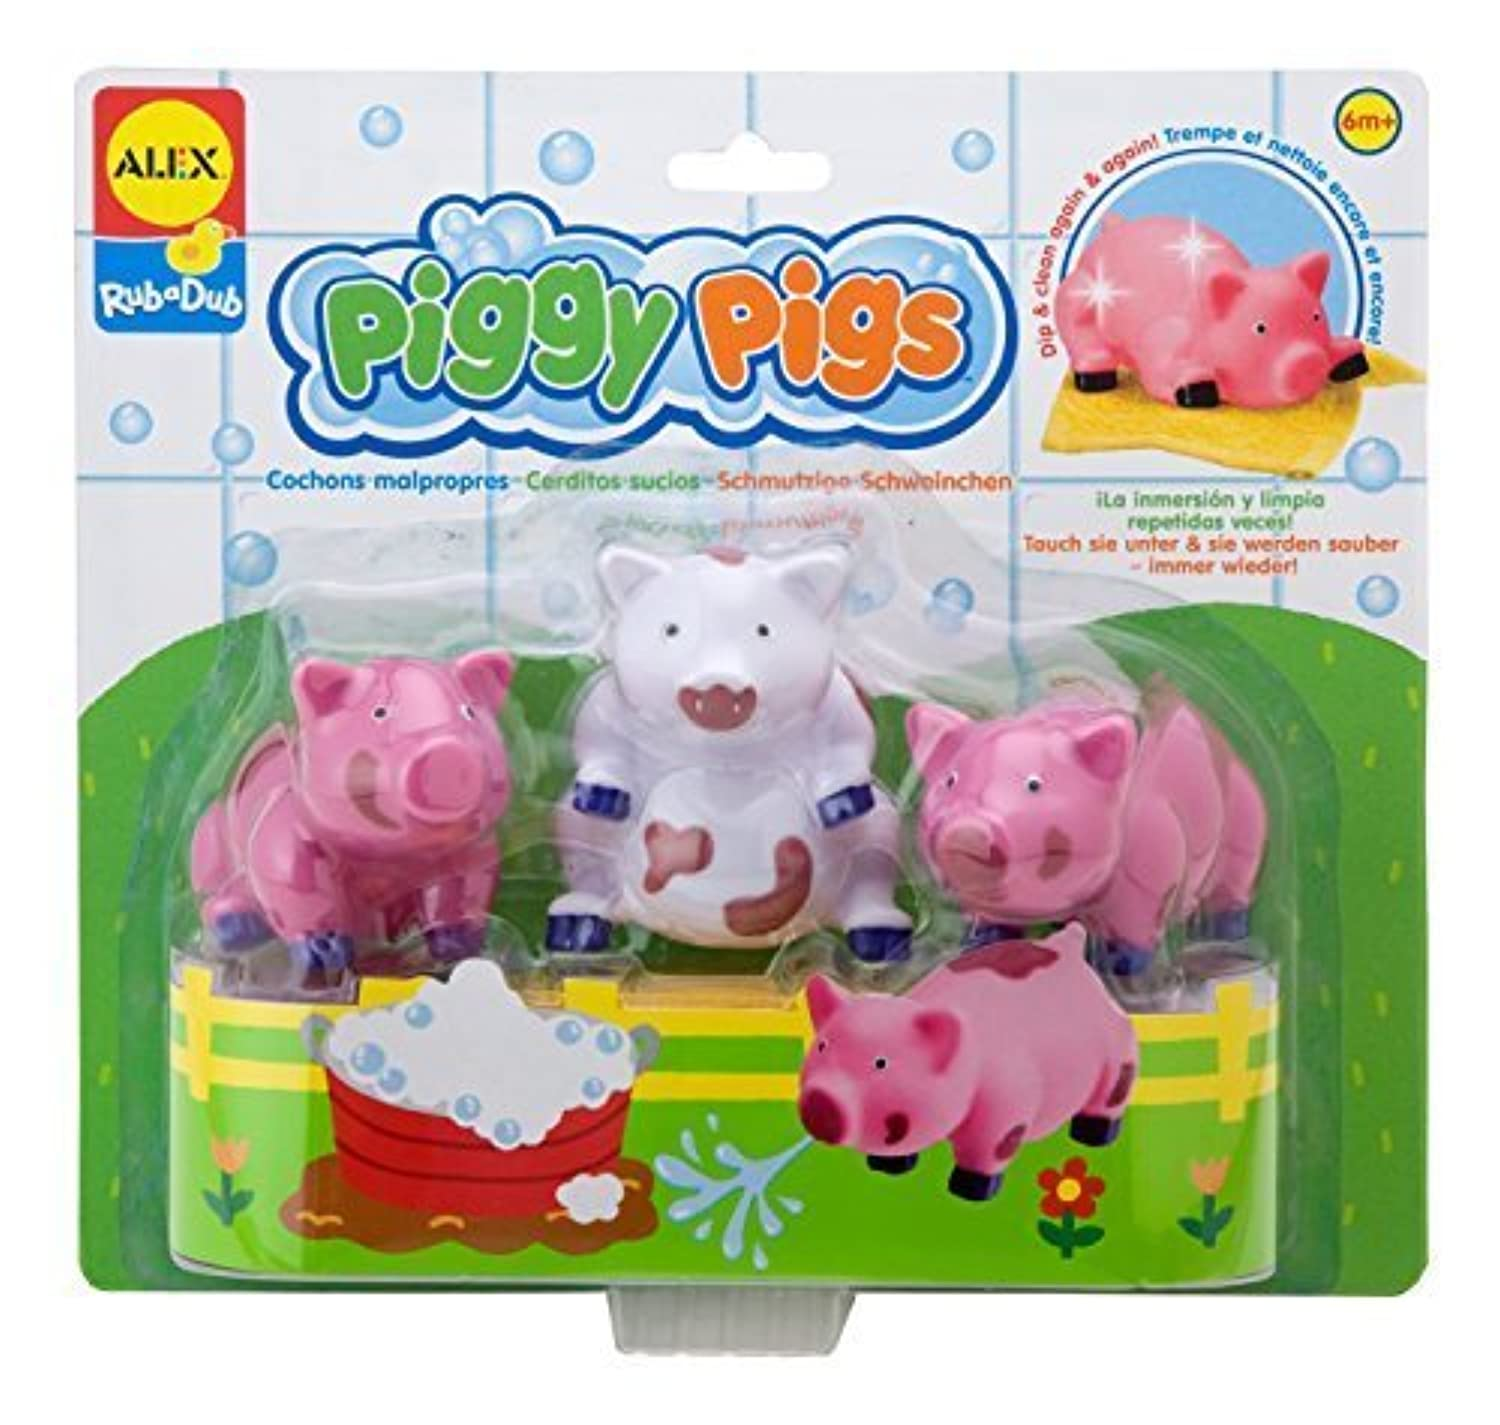 アレックス ALEX Toys Rub a Dub Rub a Dub Piggy Pigs in the Tub by アレックス ALEX Toys (並行輸入品)